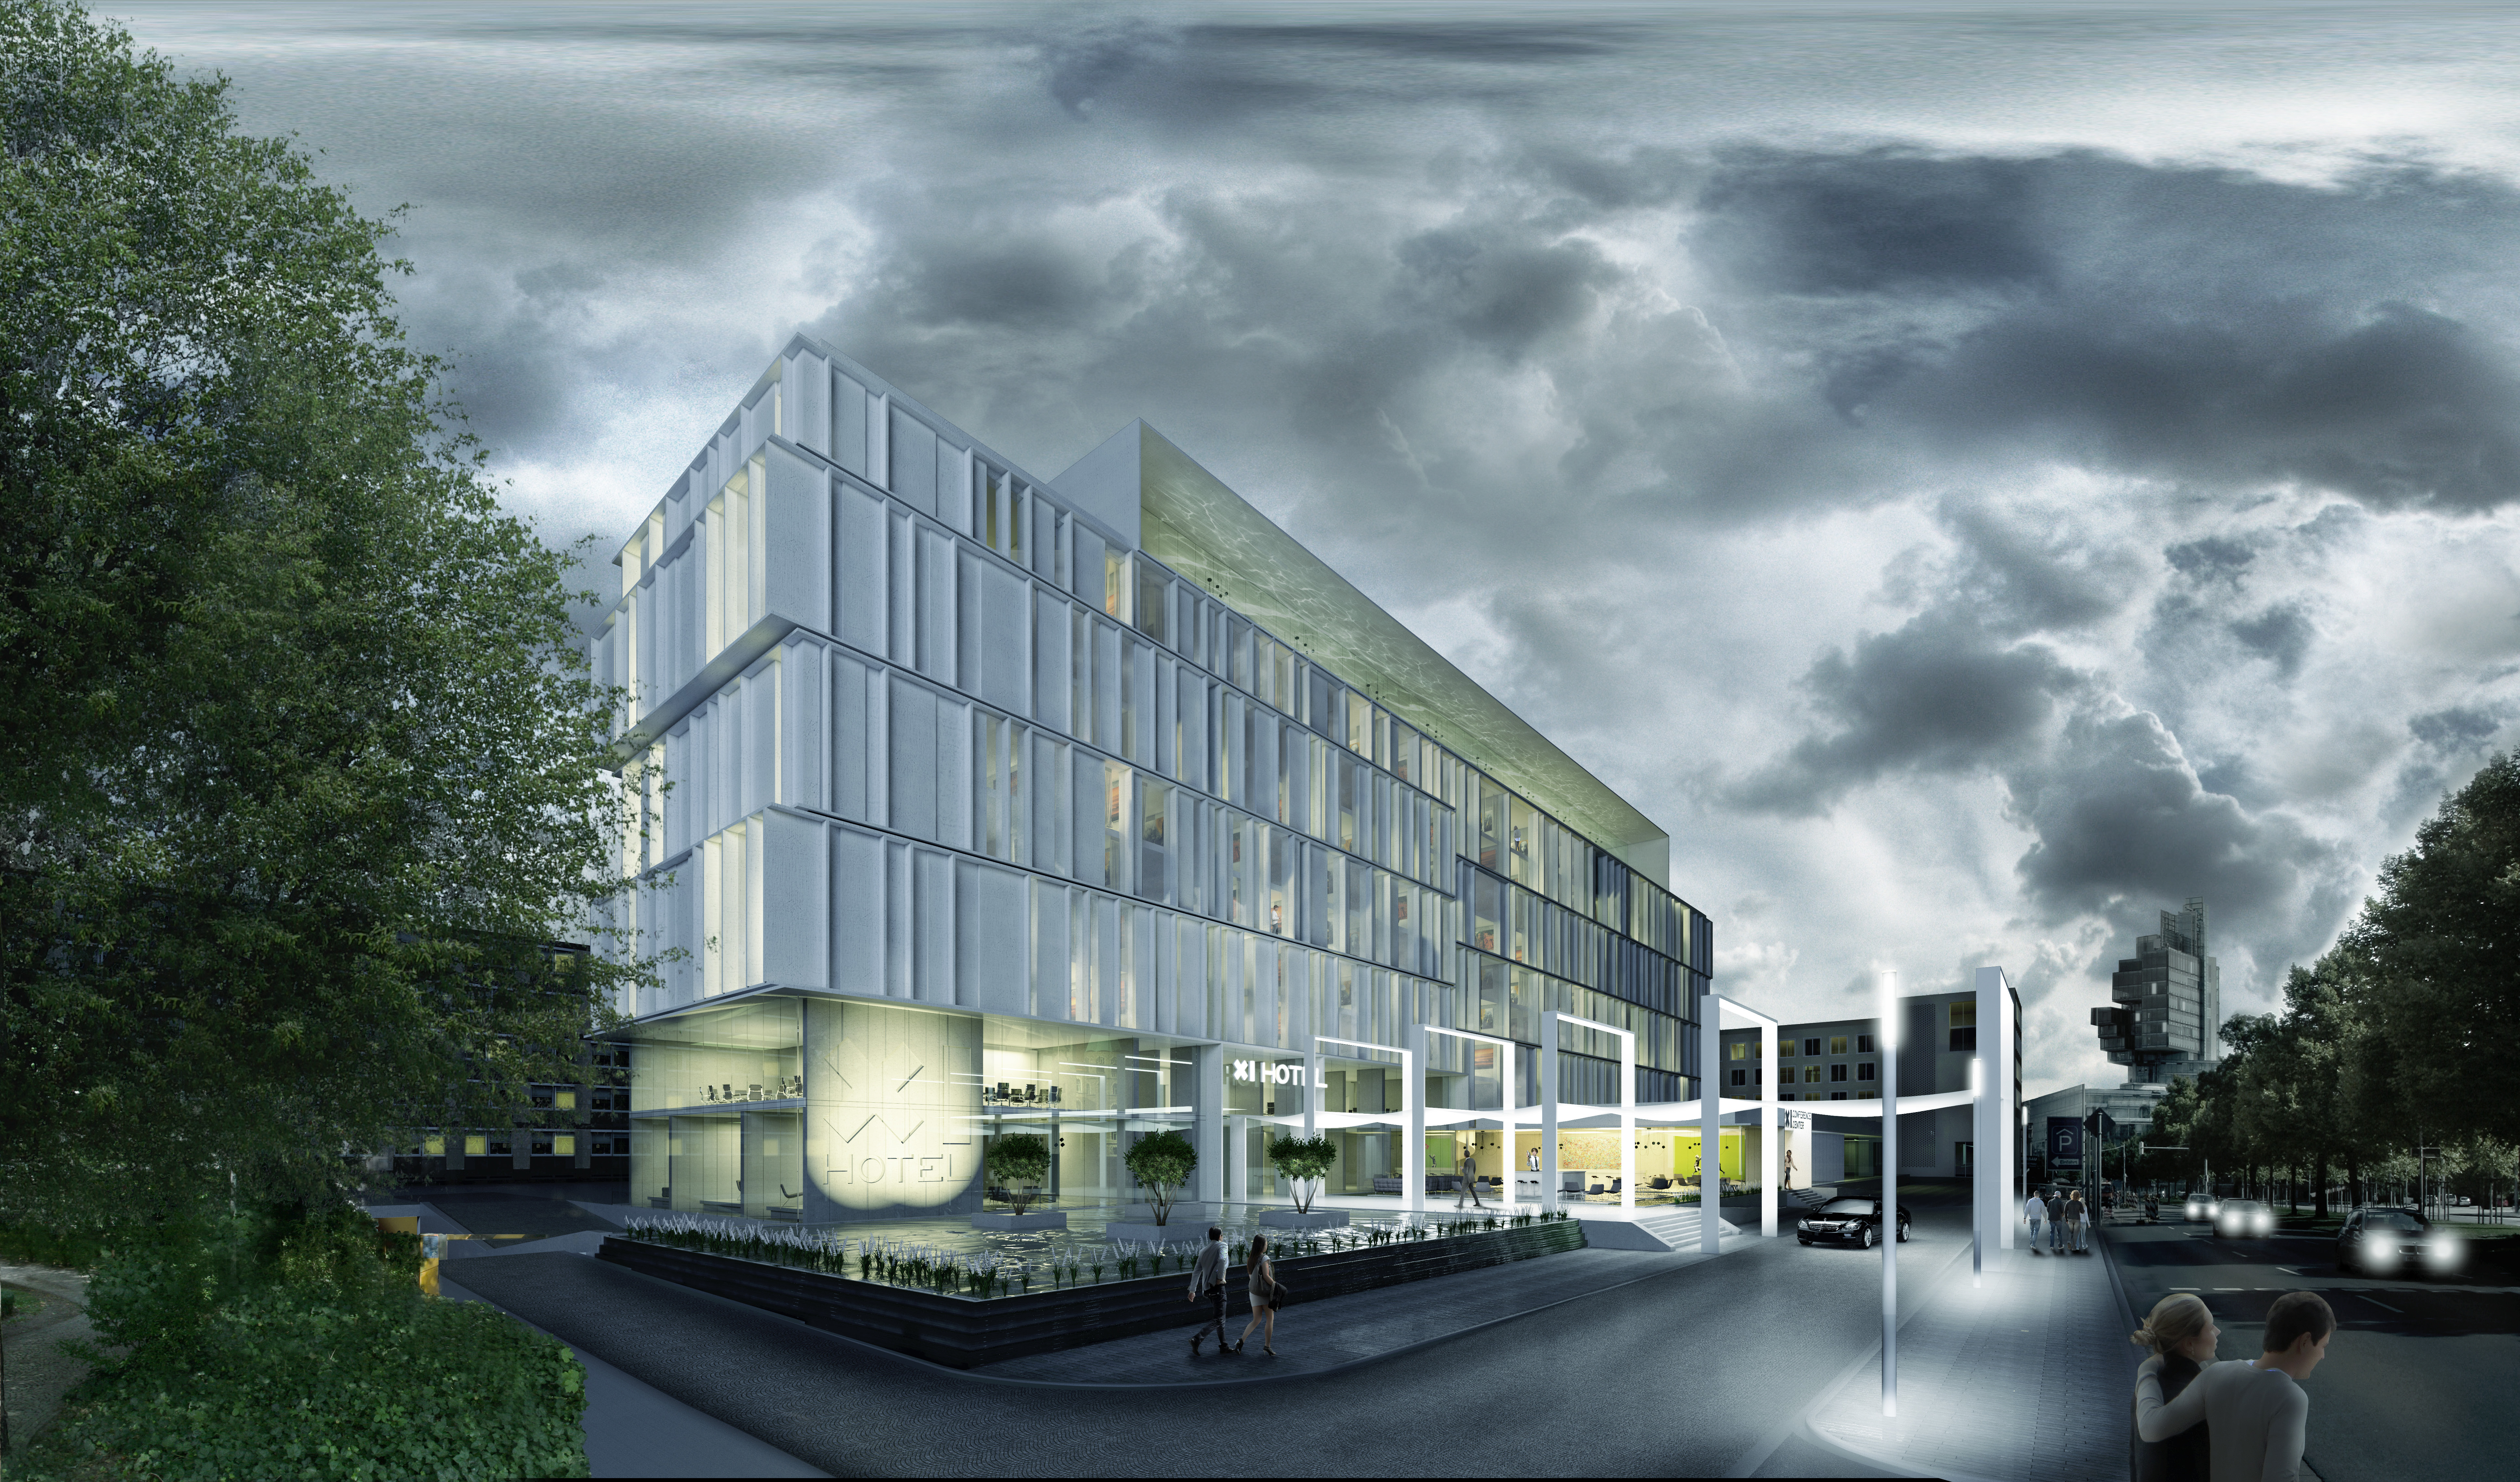 XI-Hotel Hannover